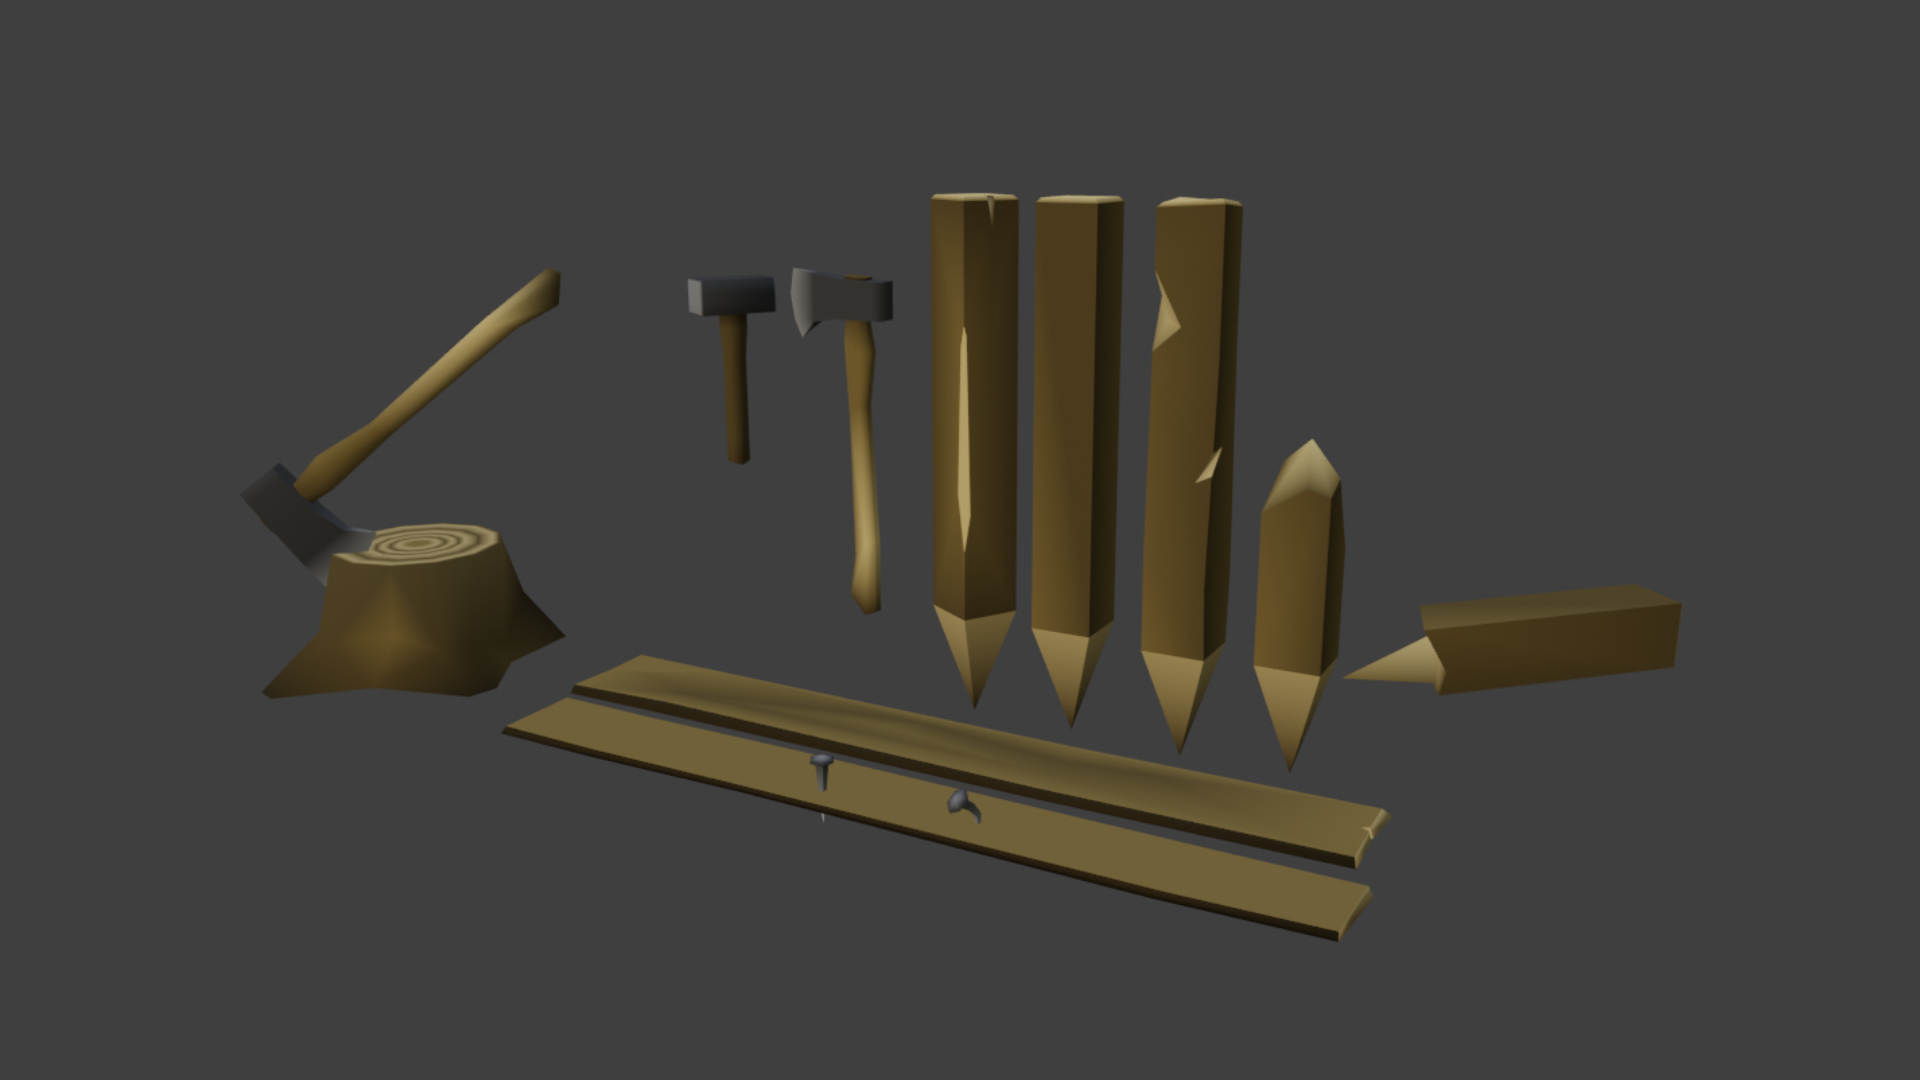 Free Assets] 3D Low Poly Models - Release Announcements